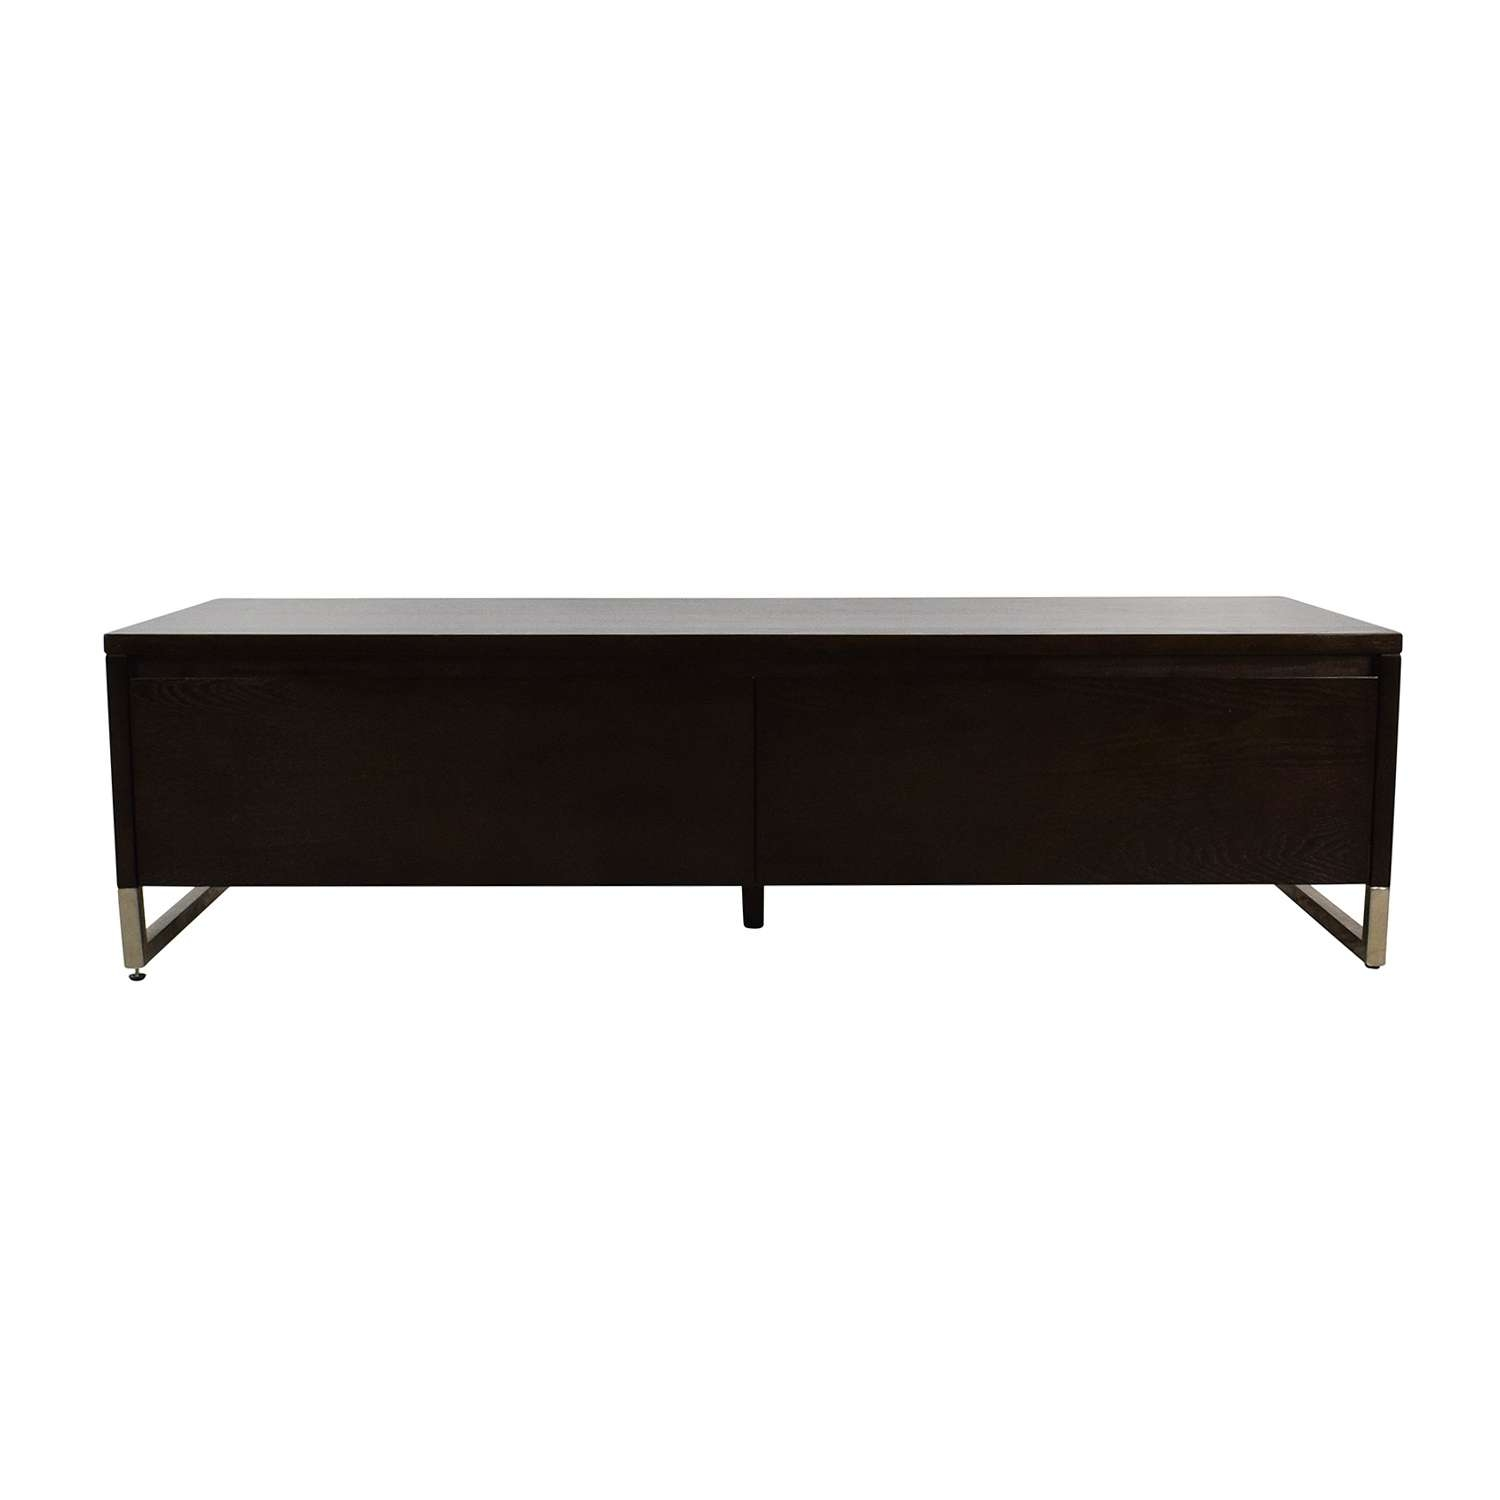 Best Of West Elm Sideboard – Bjdgjy With Regard To West Elm Sideboards (View 19 of 20)